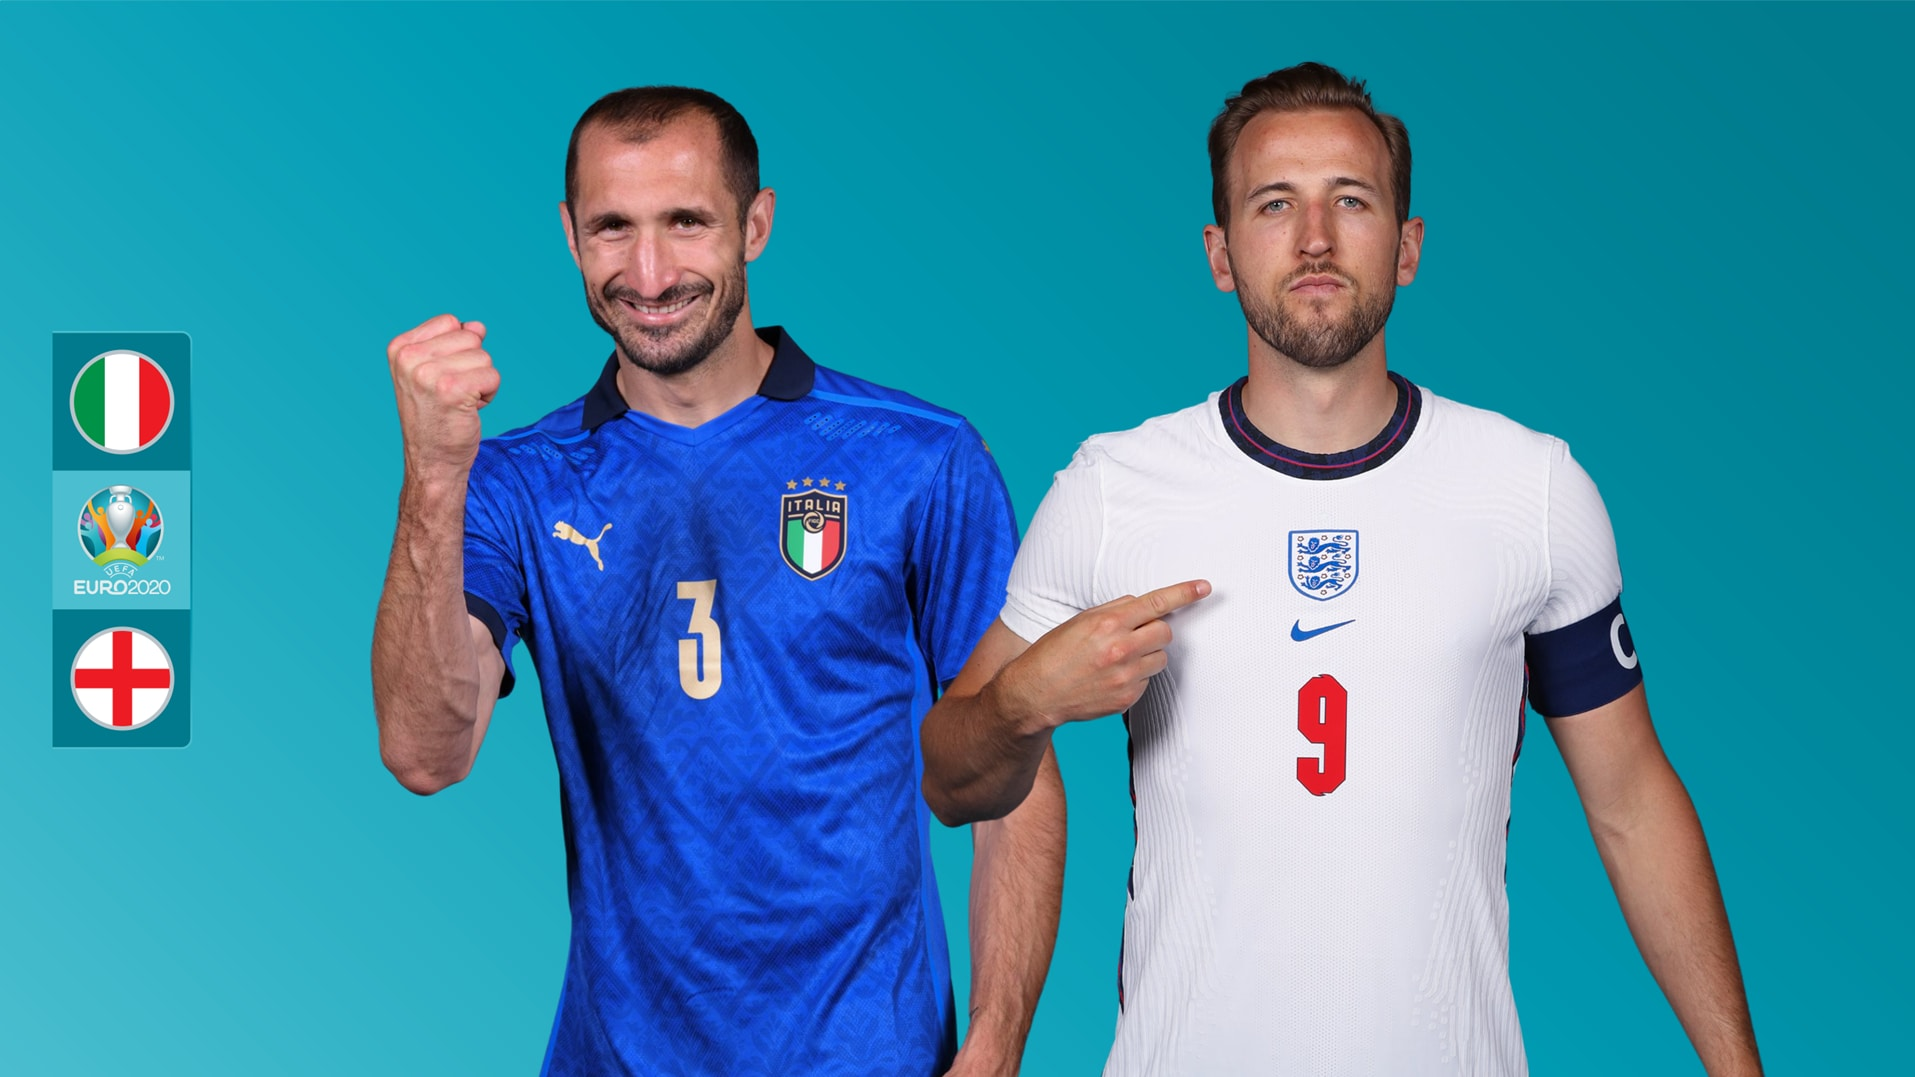 Italy vs England UEFA EURO 2020 final preview: where to watch, TV channels and live streams, team news, form guide